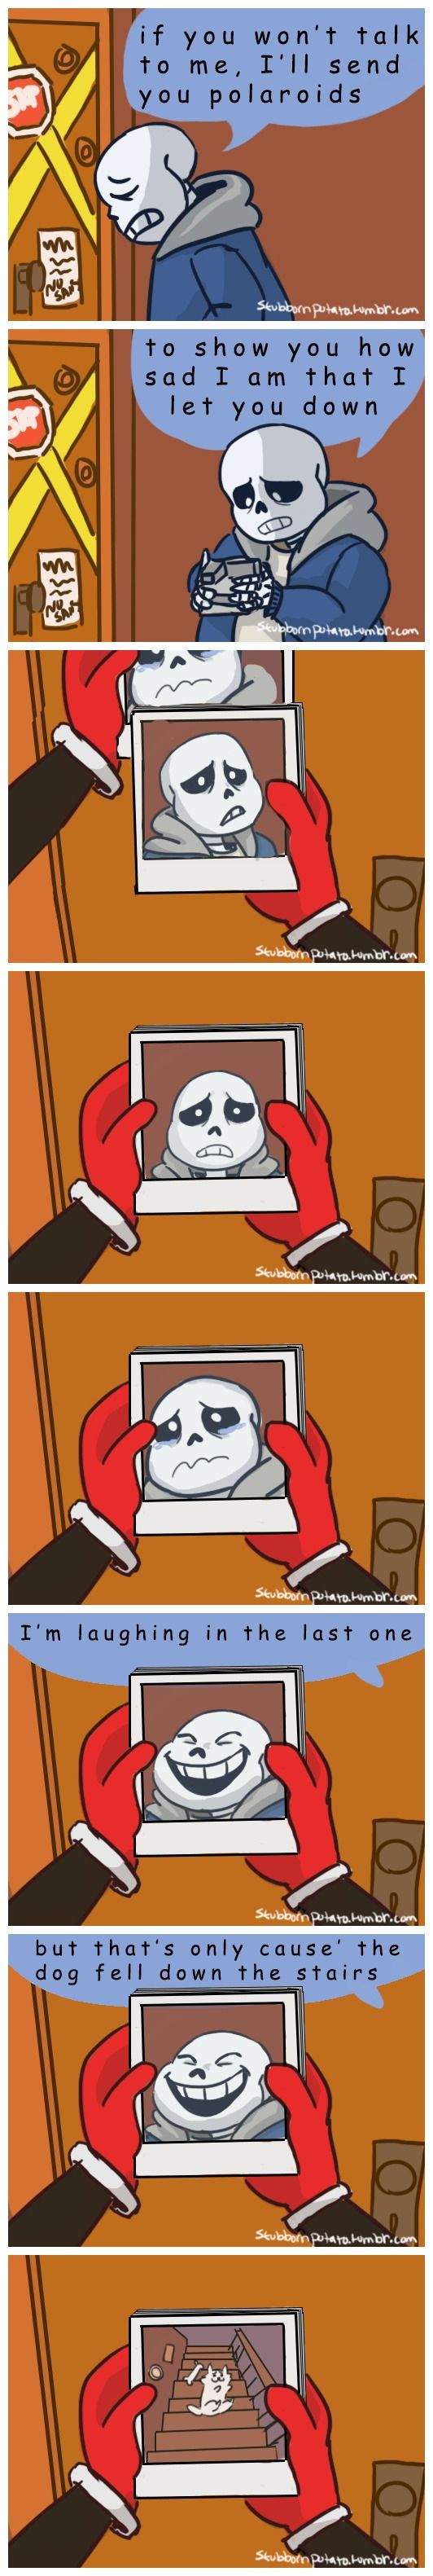 Sans and Papyrus - comic - Simpsons reference